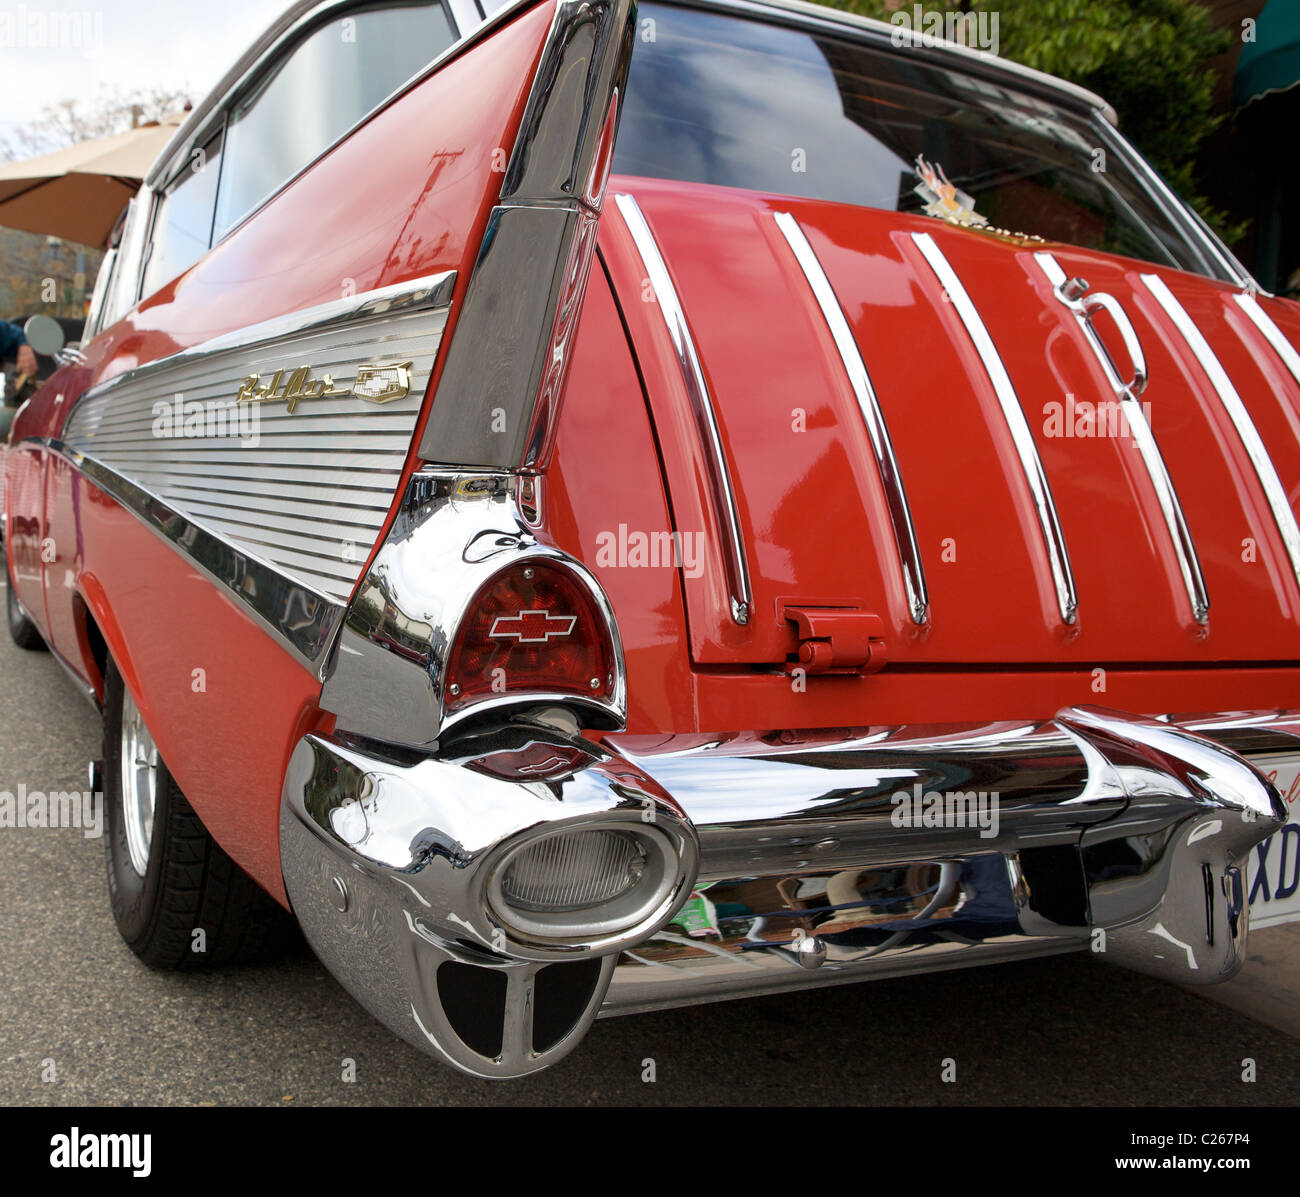 1957 Chevy Nomad Stock Photos Images Alamy Bel Air Chevrolet Image